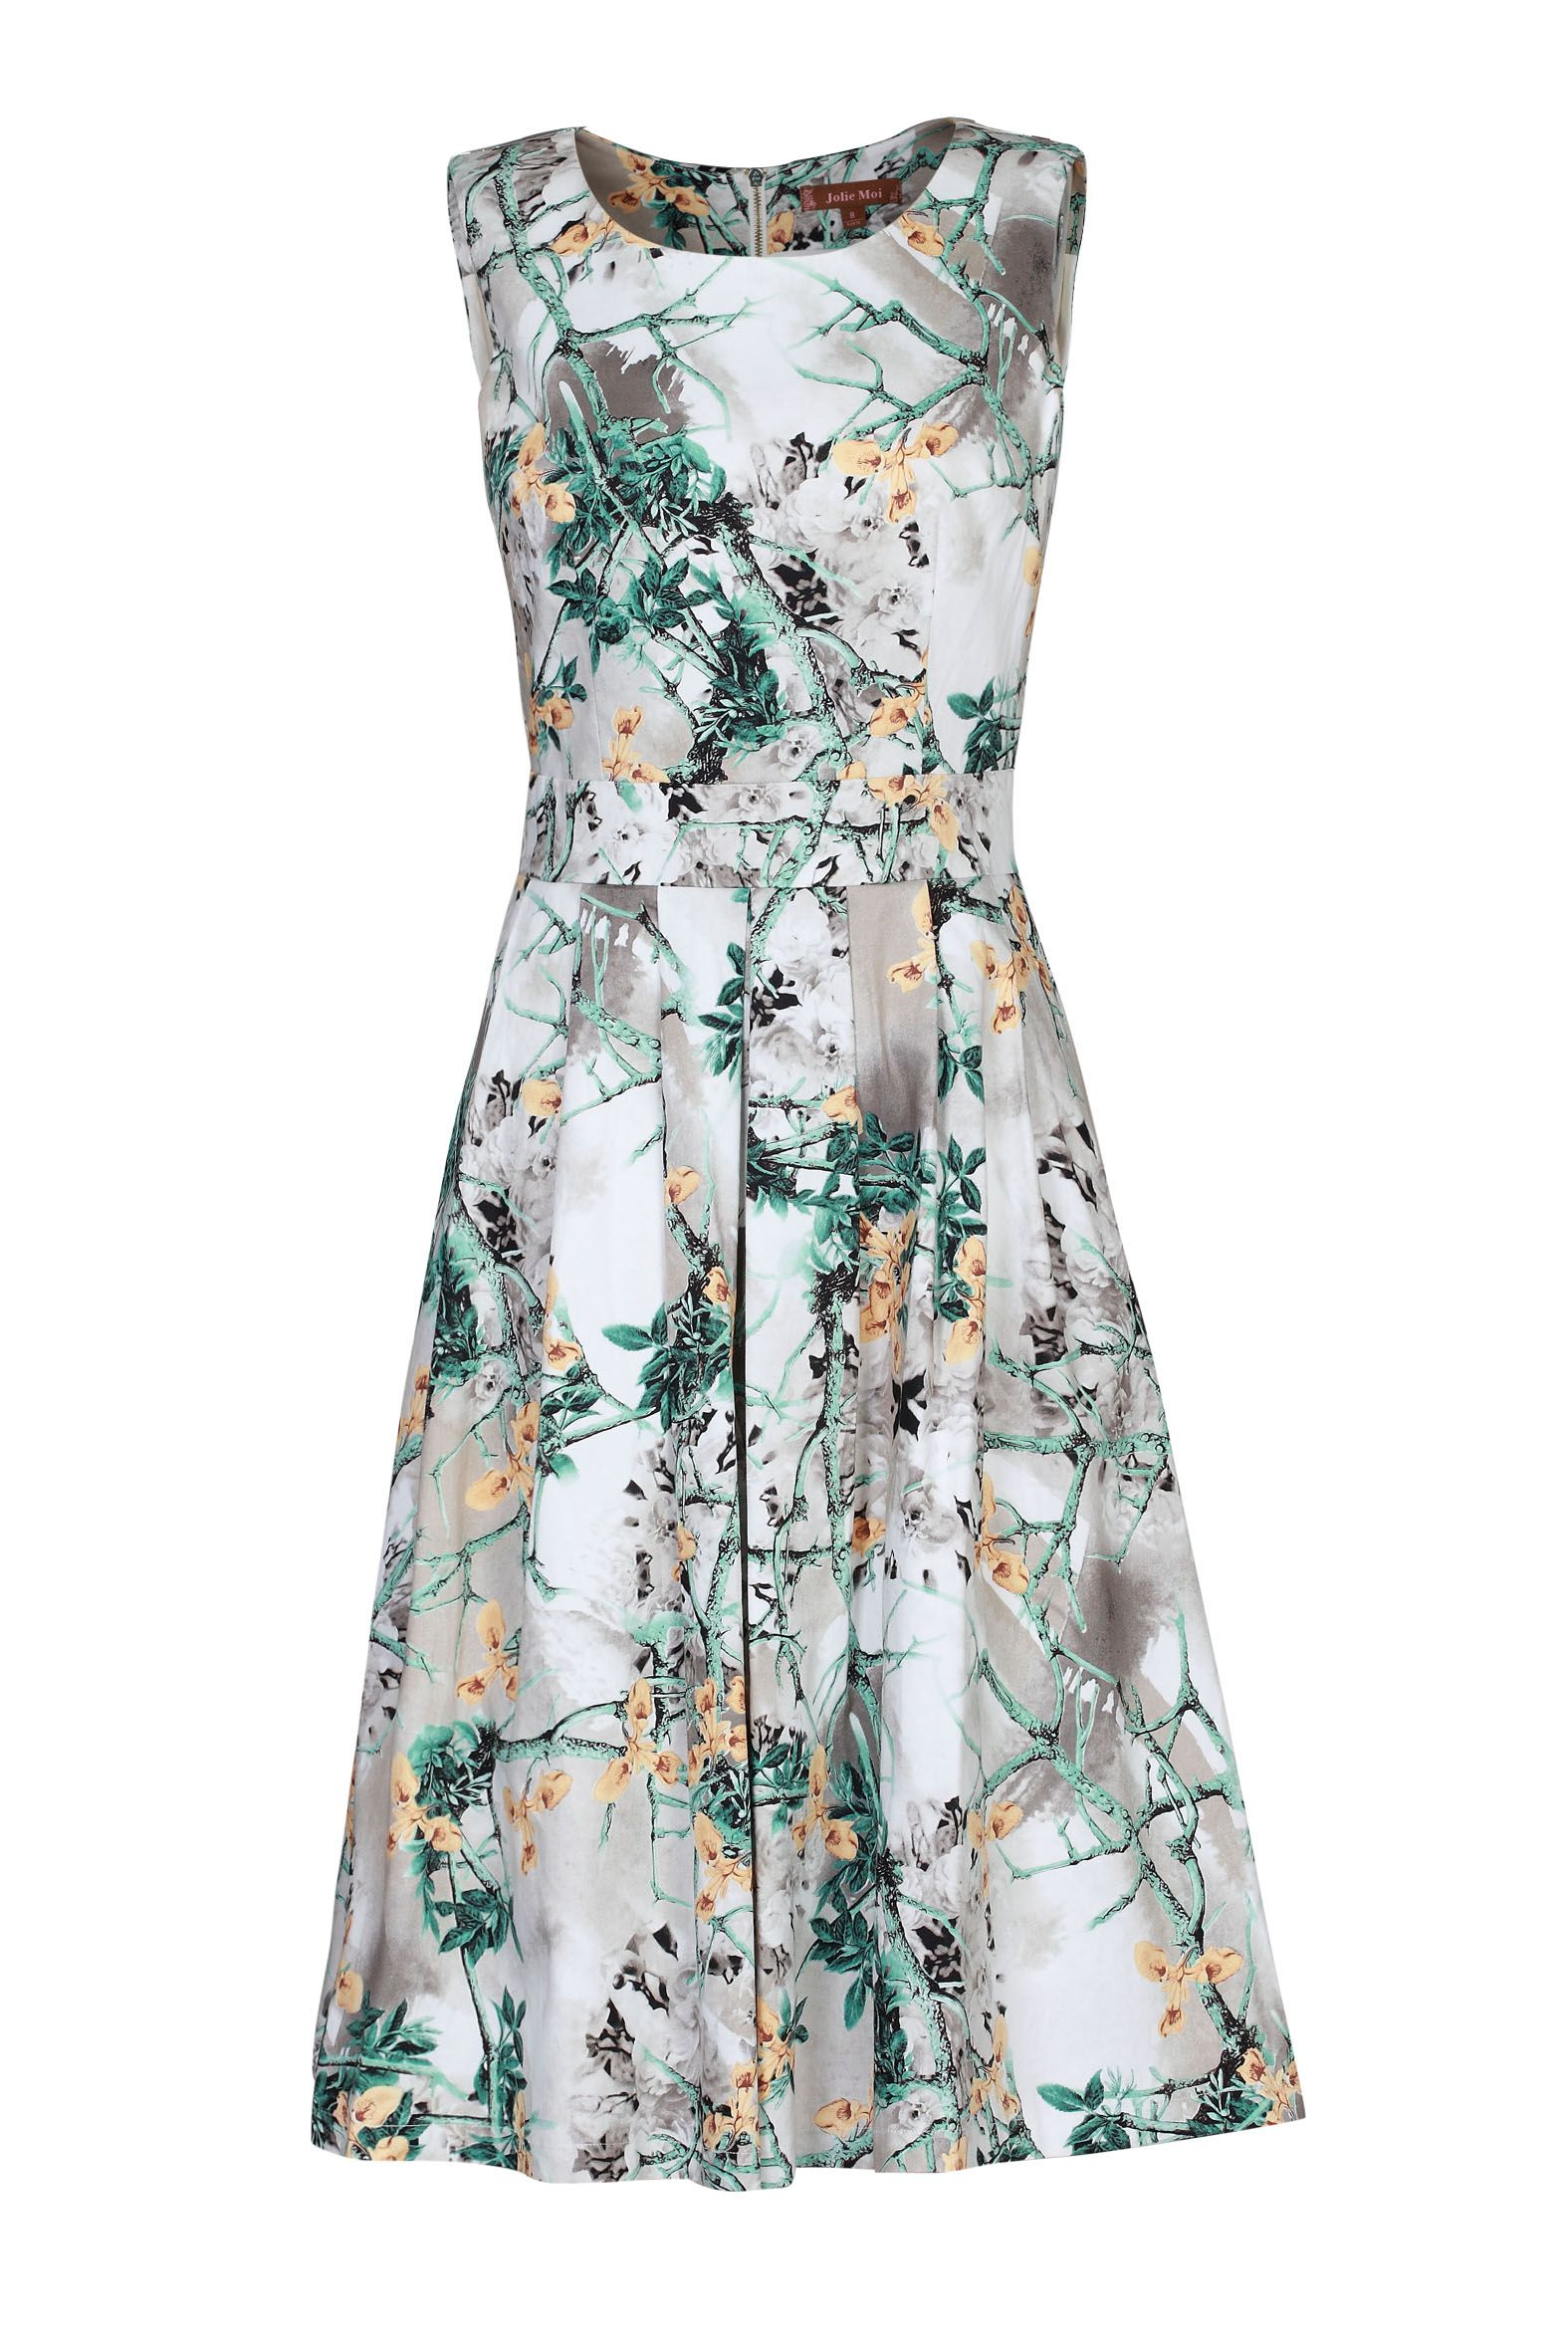 Jolie Moi Floral Print 50s Pleated Dress £42.00 AT vintagedancer.com